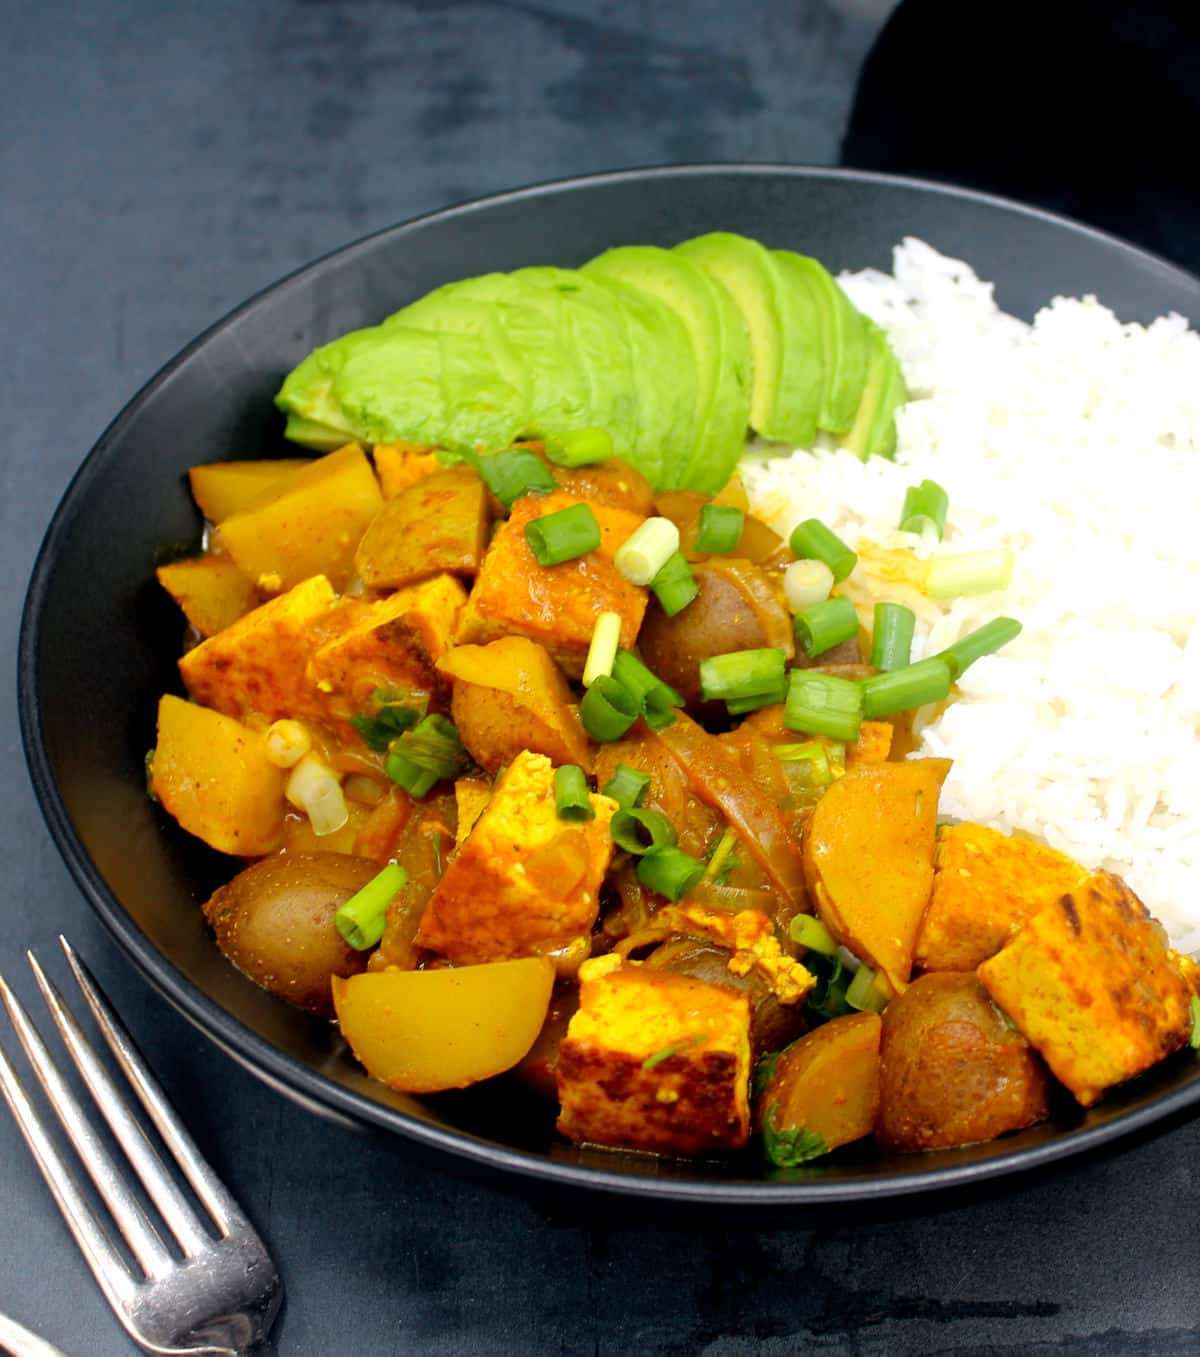 Vegan Jamaican Curry with tofu and potatoes in a black bowl with scallions, avocado and white rice and two forks.